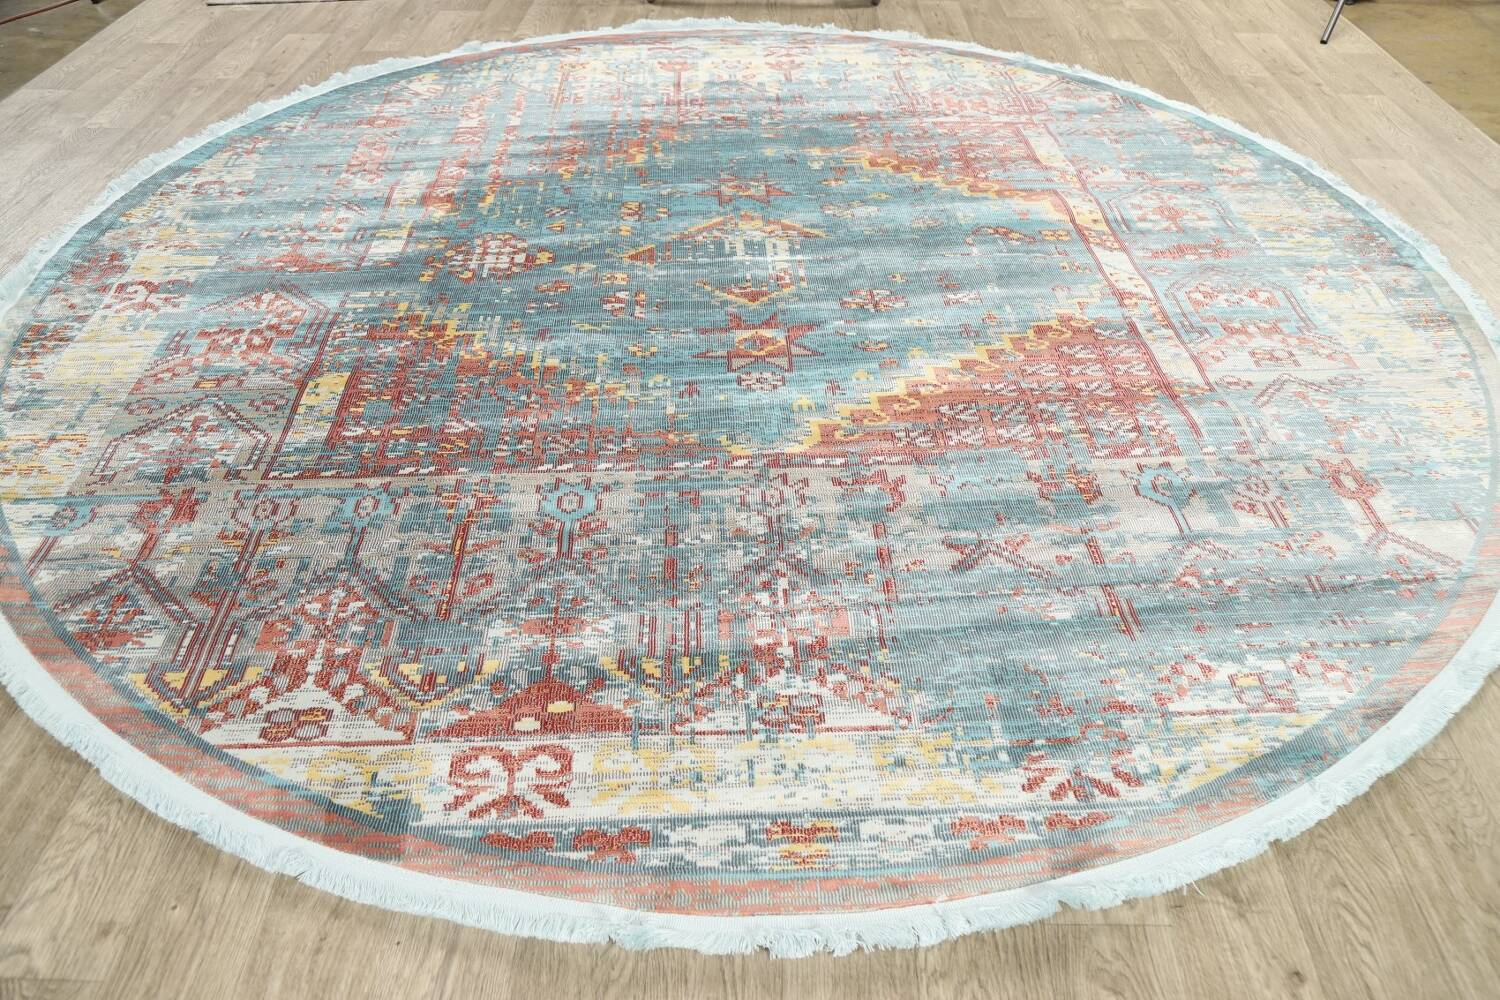 Vintage Style Distressed Heat-Set Area Rugs image 45